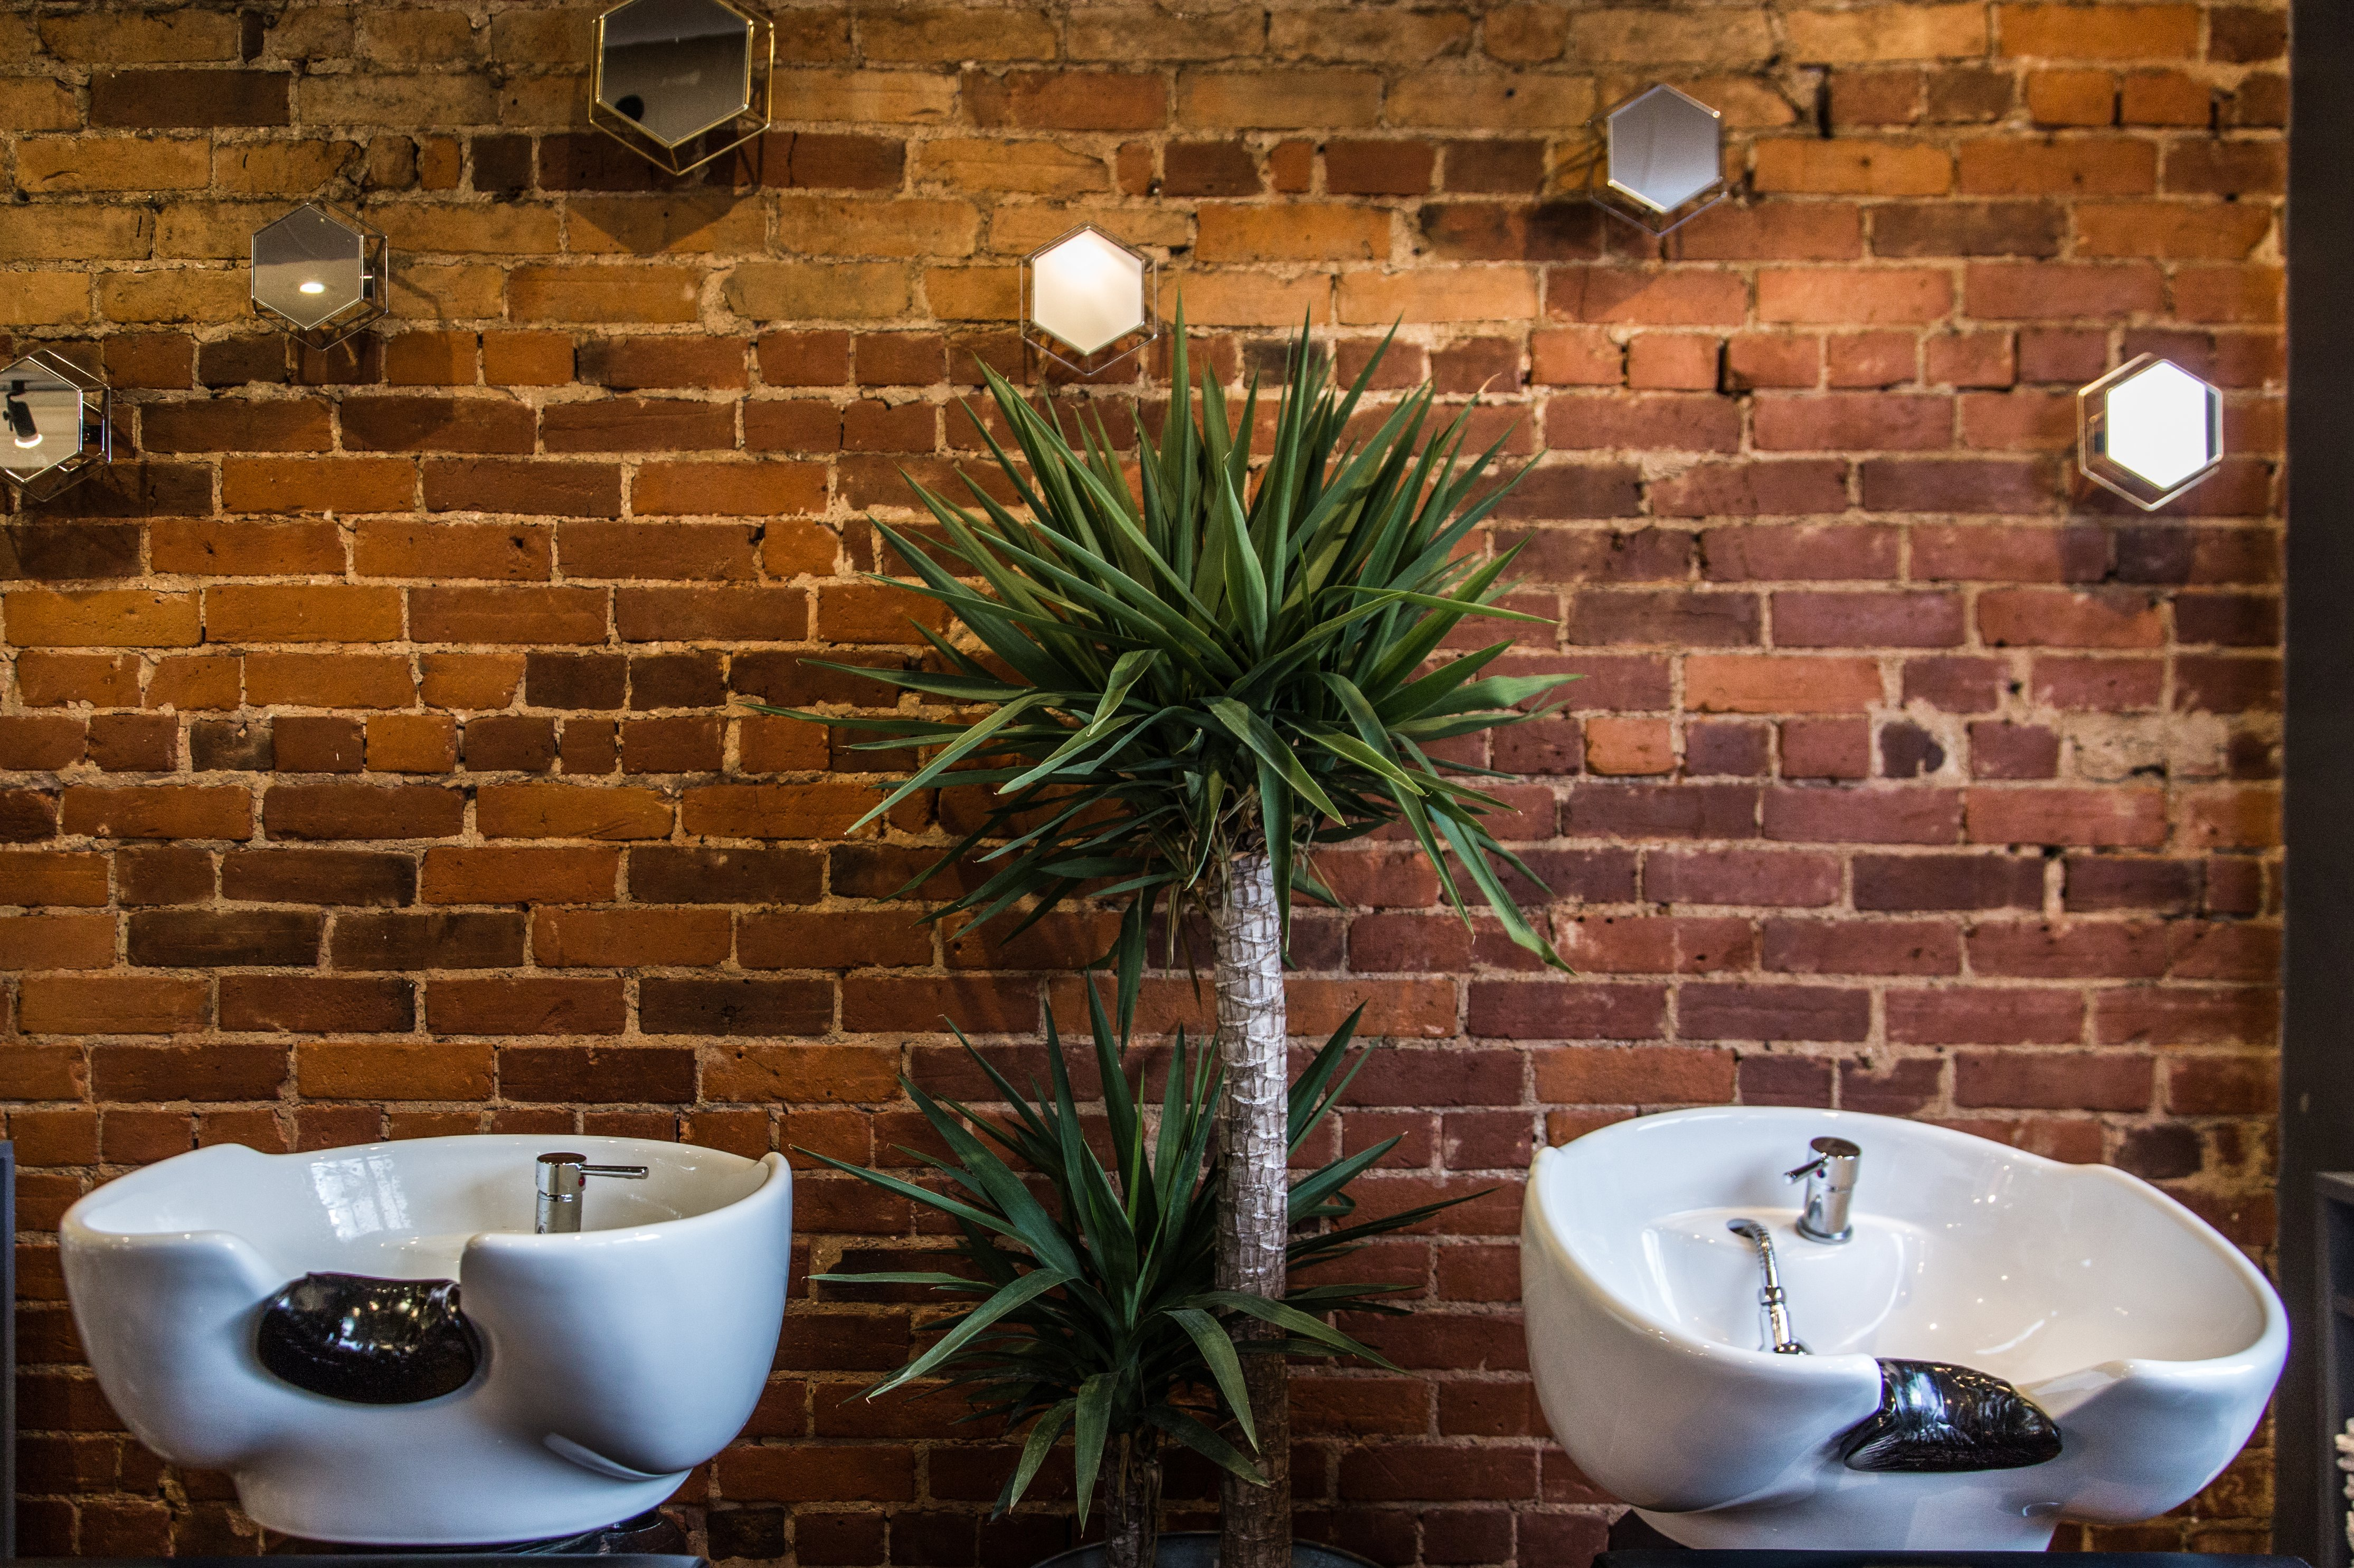 Two hair washing sinks in a hair salon in front of a red brick wall with a plant in between both.